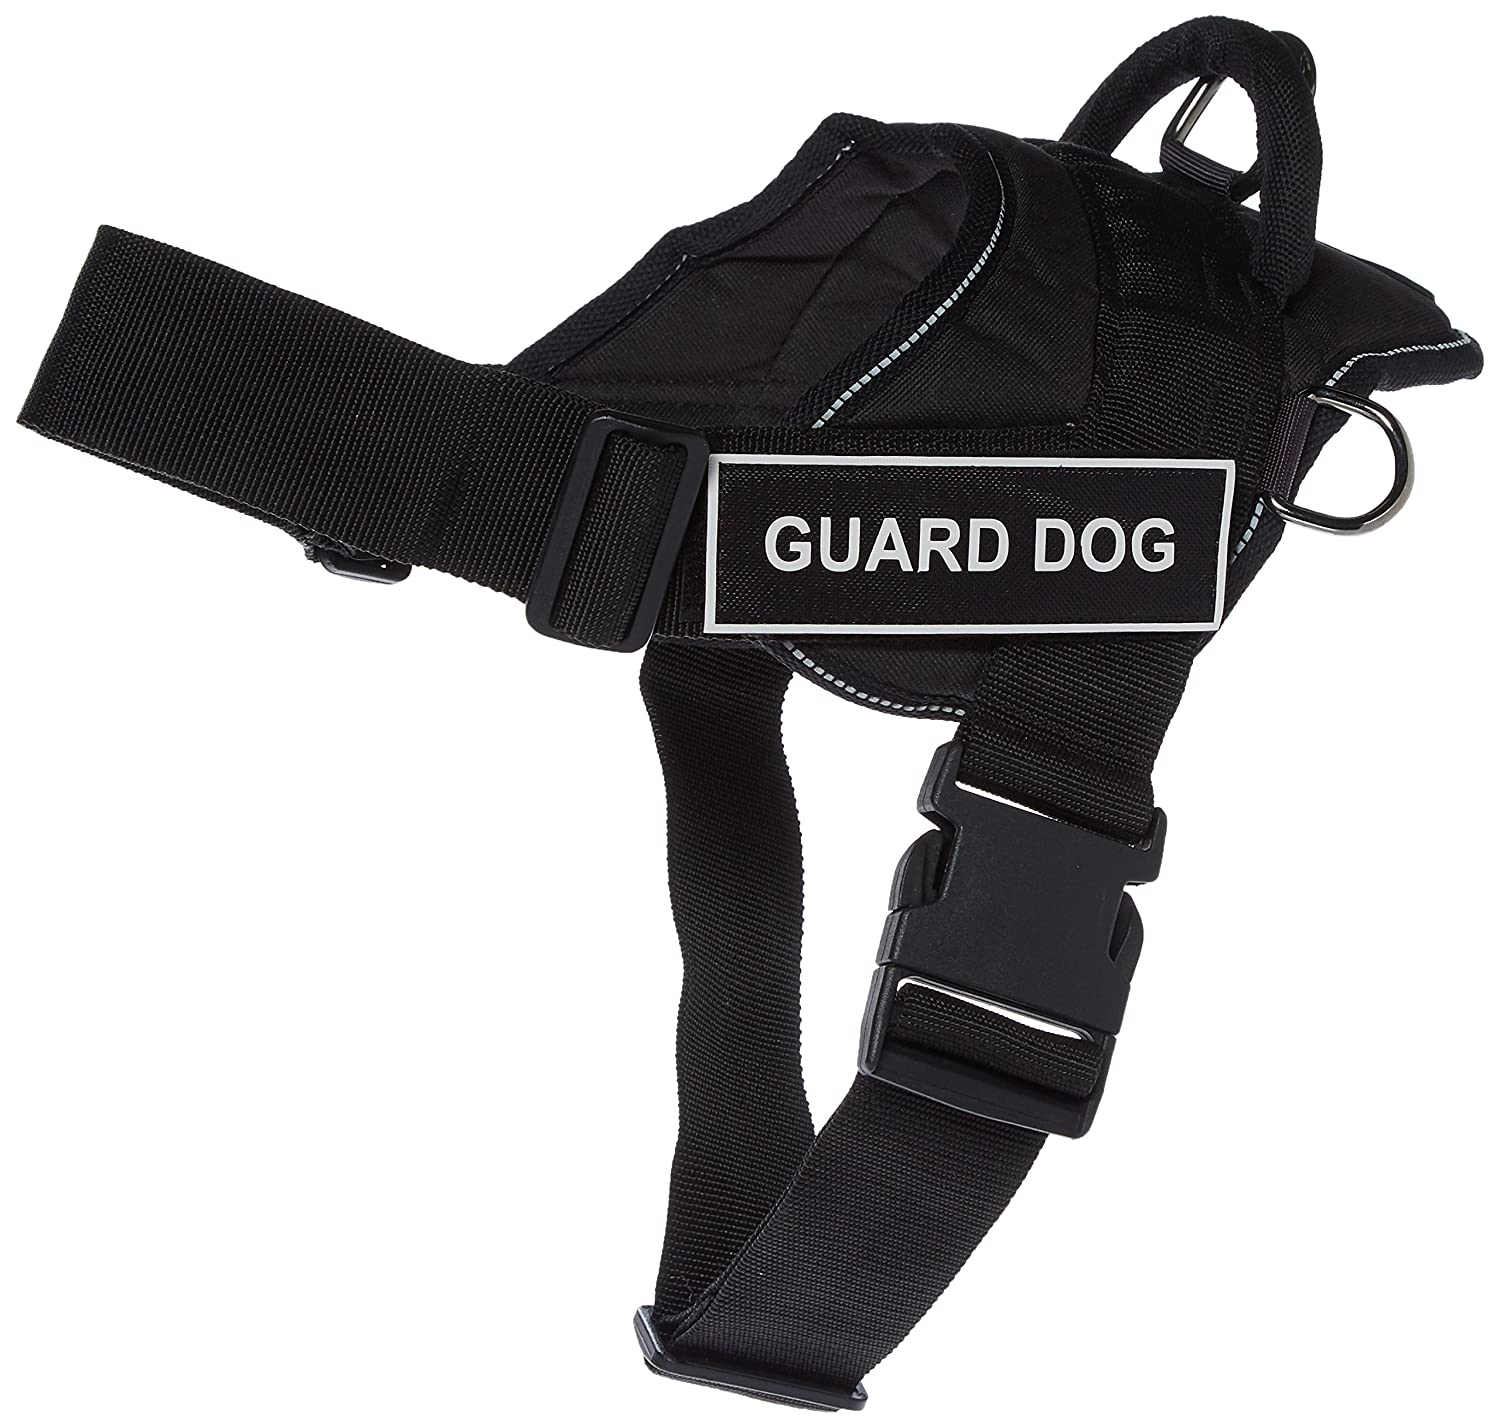 DT Fun Works Harness, Guard Dog, Black with Reflective Trim, Medium Fits Girth Size  28-Inch to 34-Inch